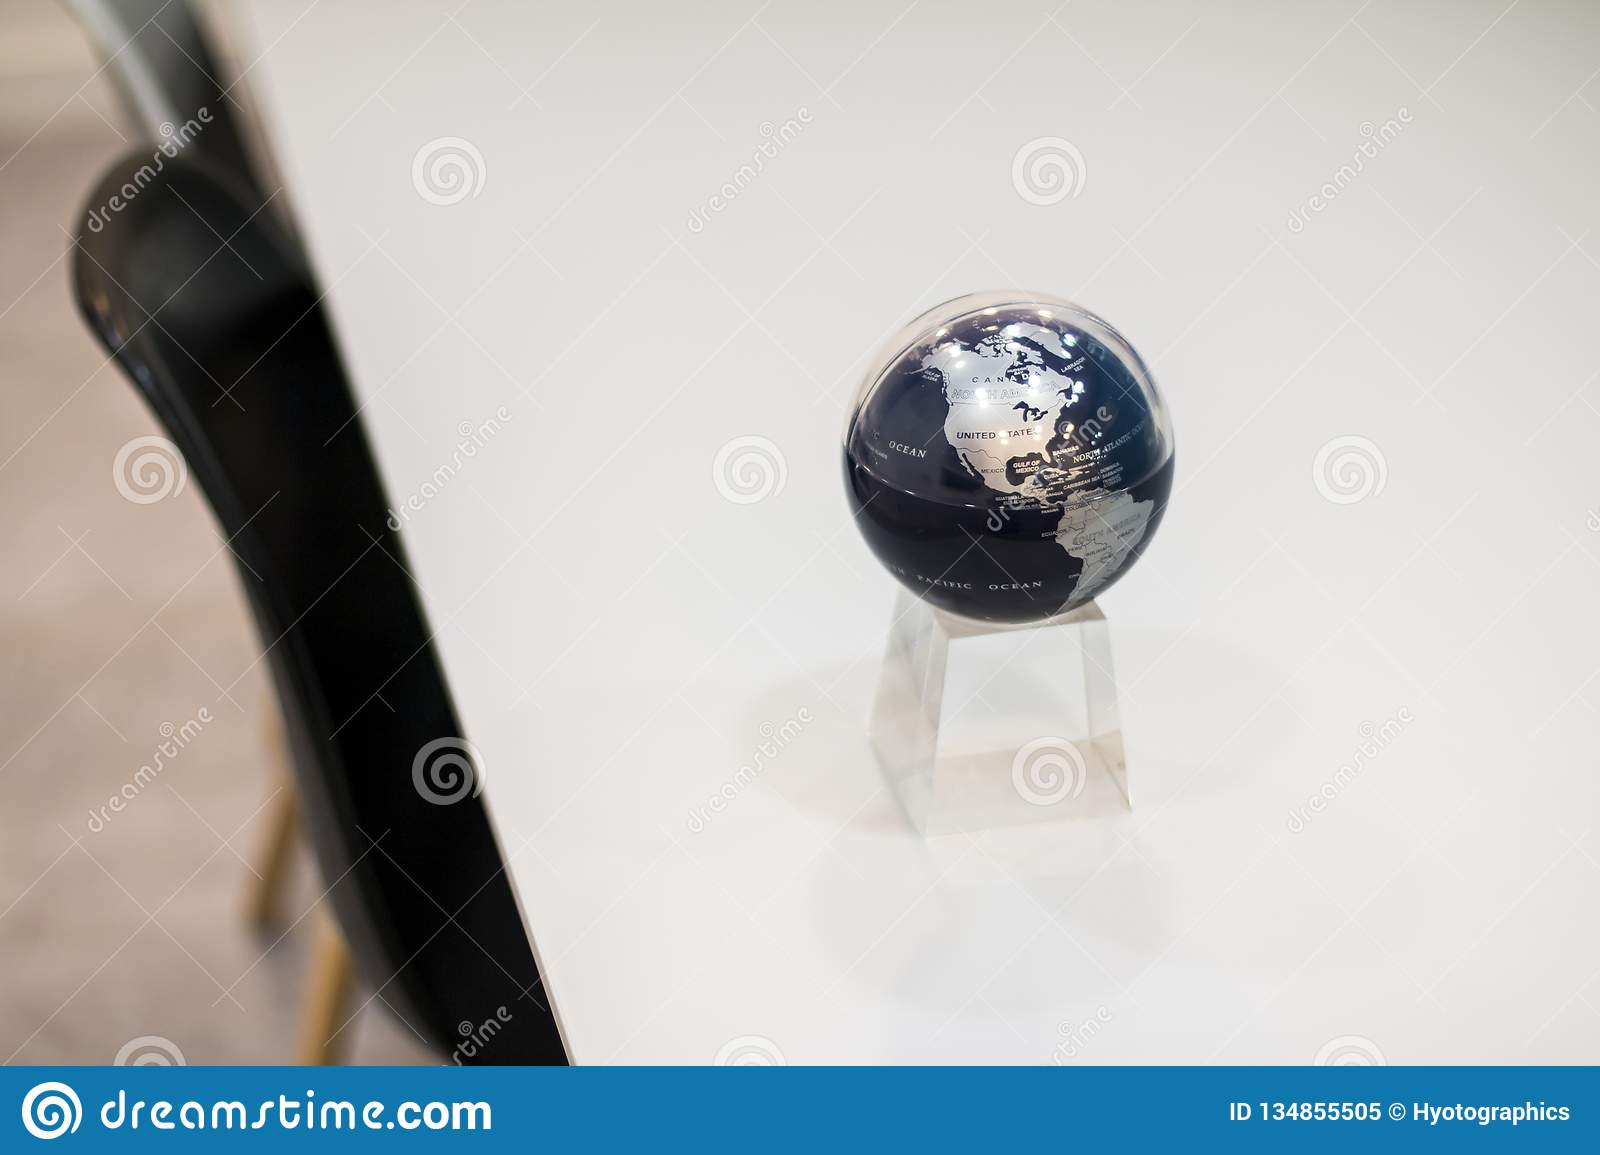 A shining Blue Globe on the table